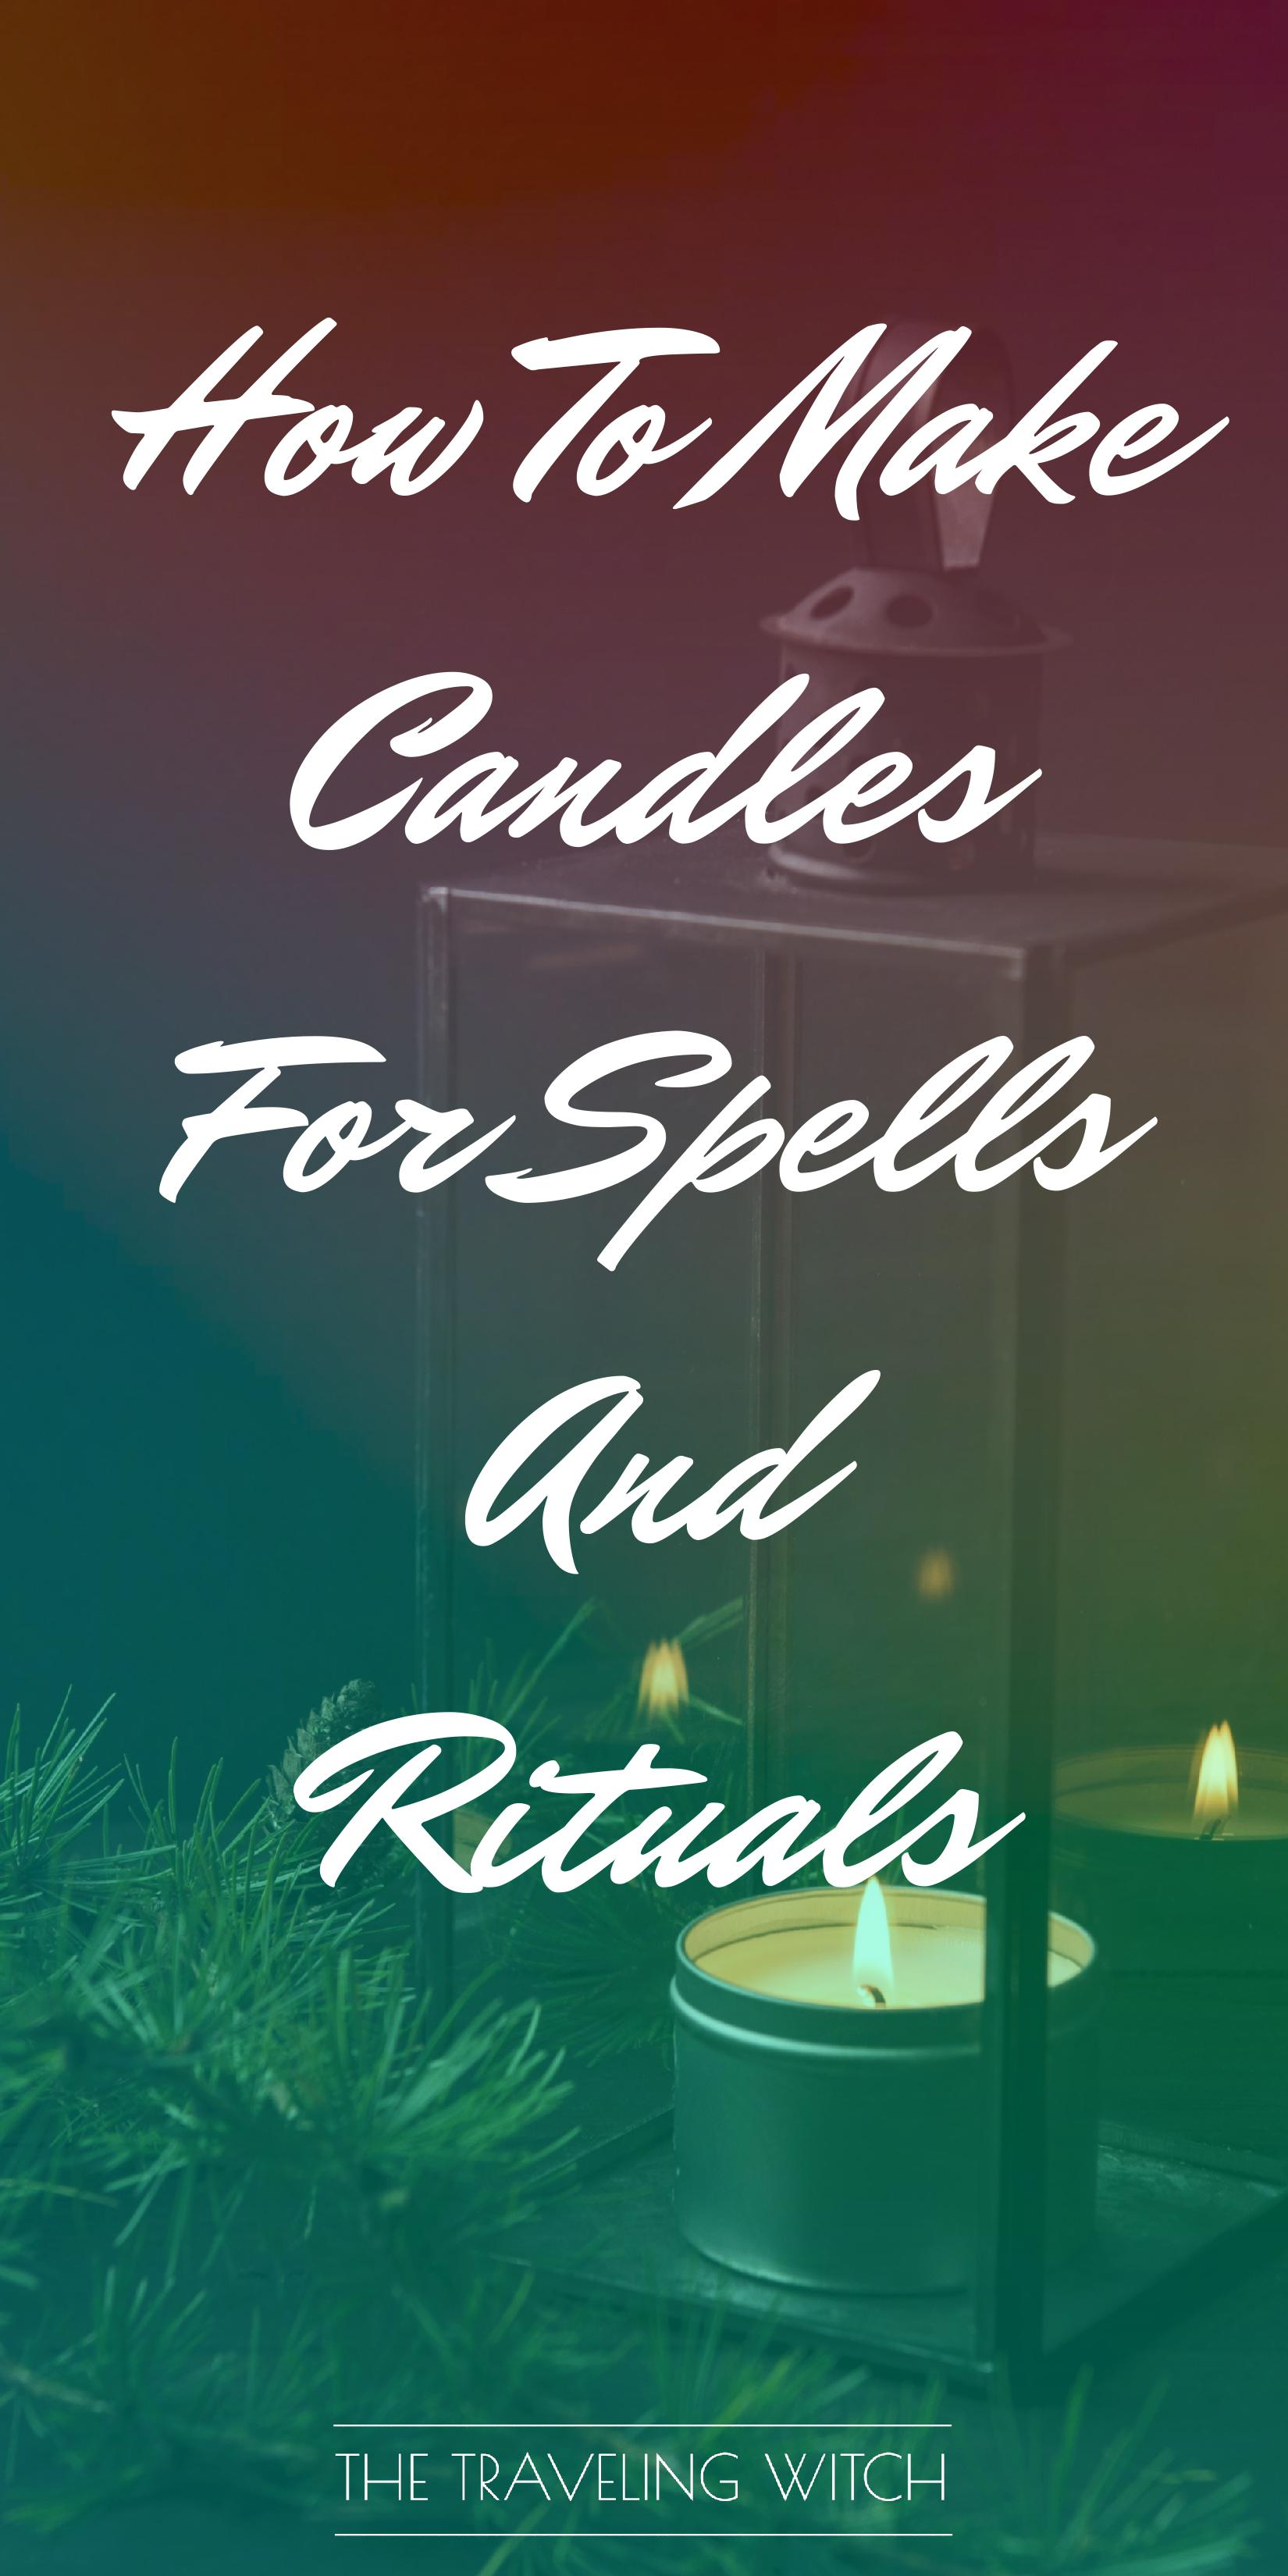 How To Make Candles For Spells And Rituals // Witchcraft // Magic // The Traveling Witch